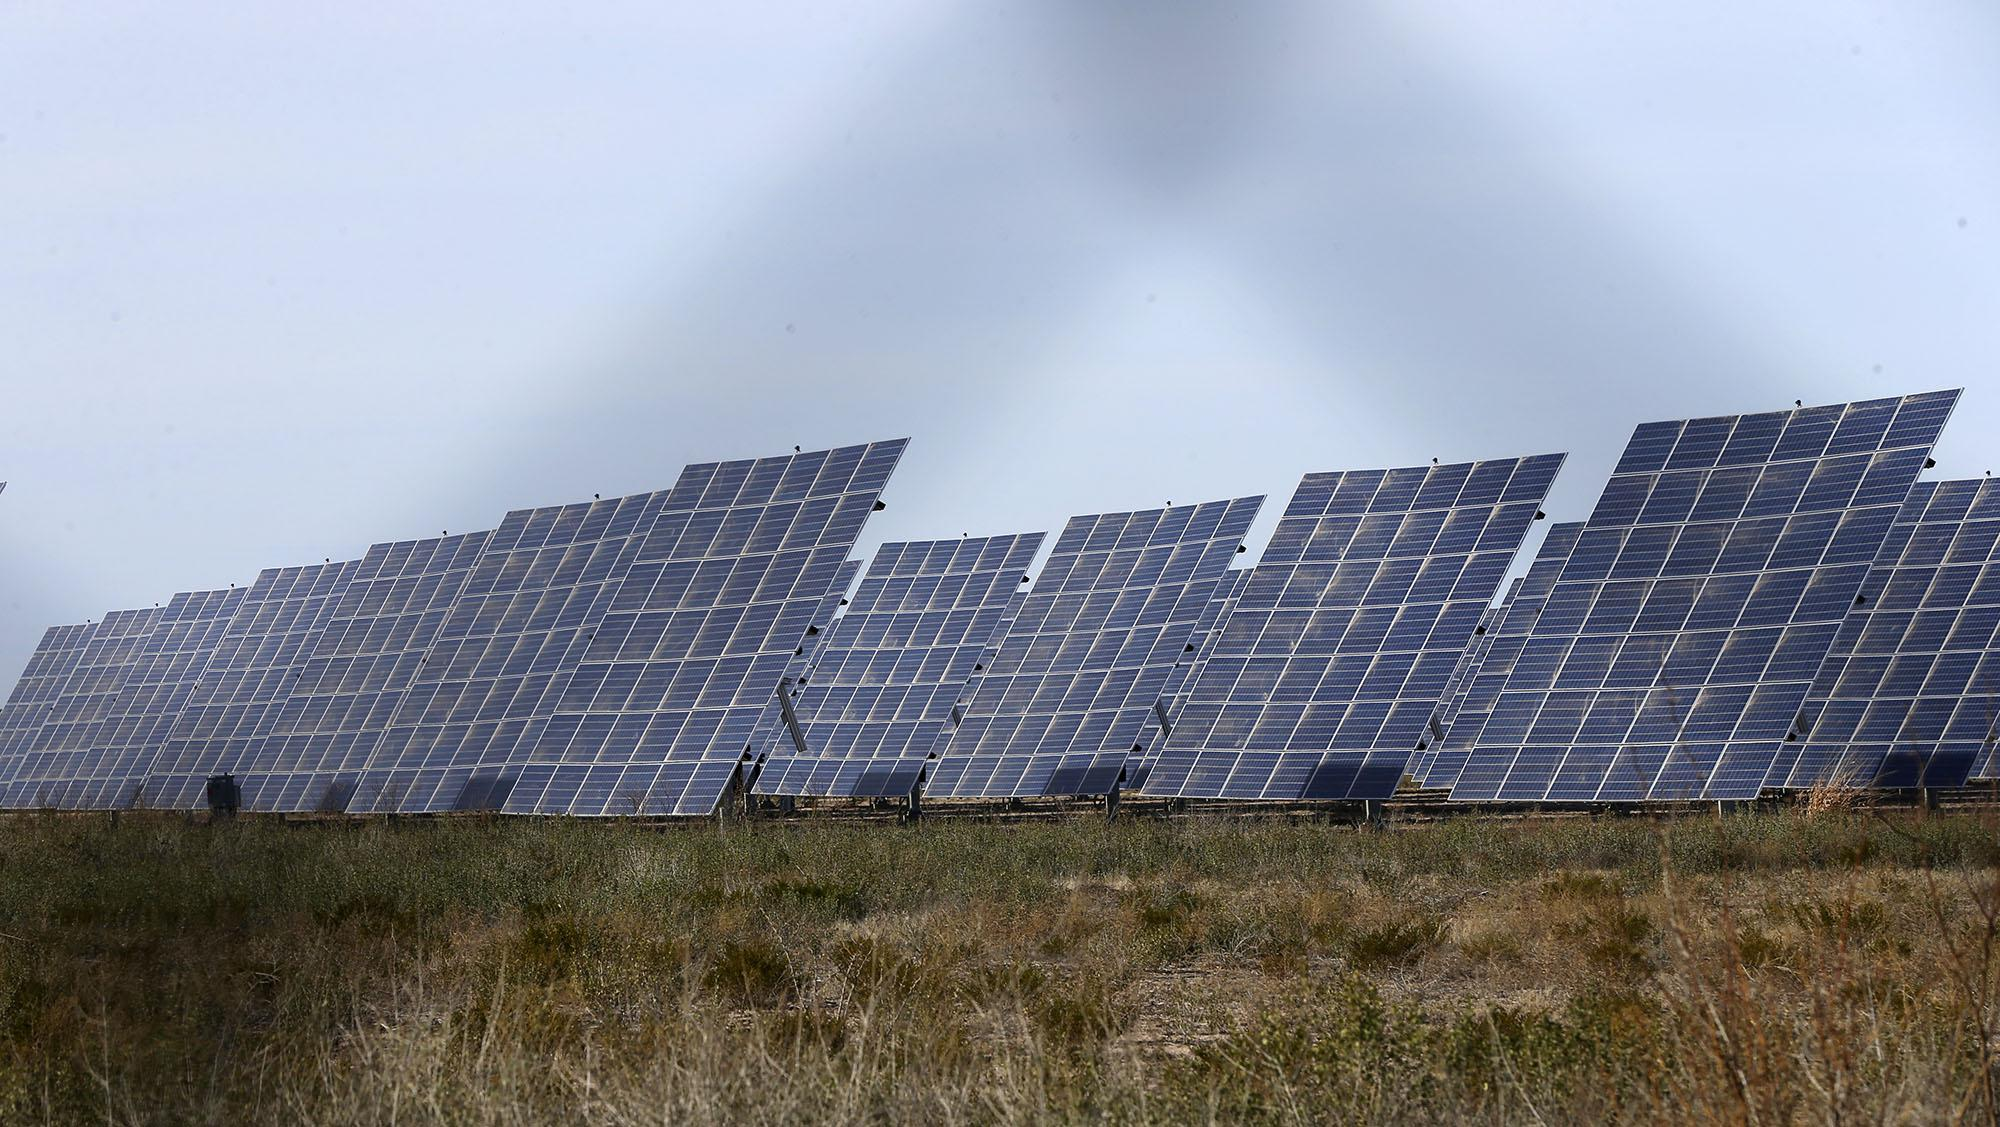 Home-grown electricity will come increasingly from solar panels